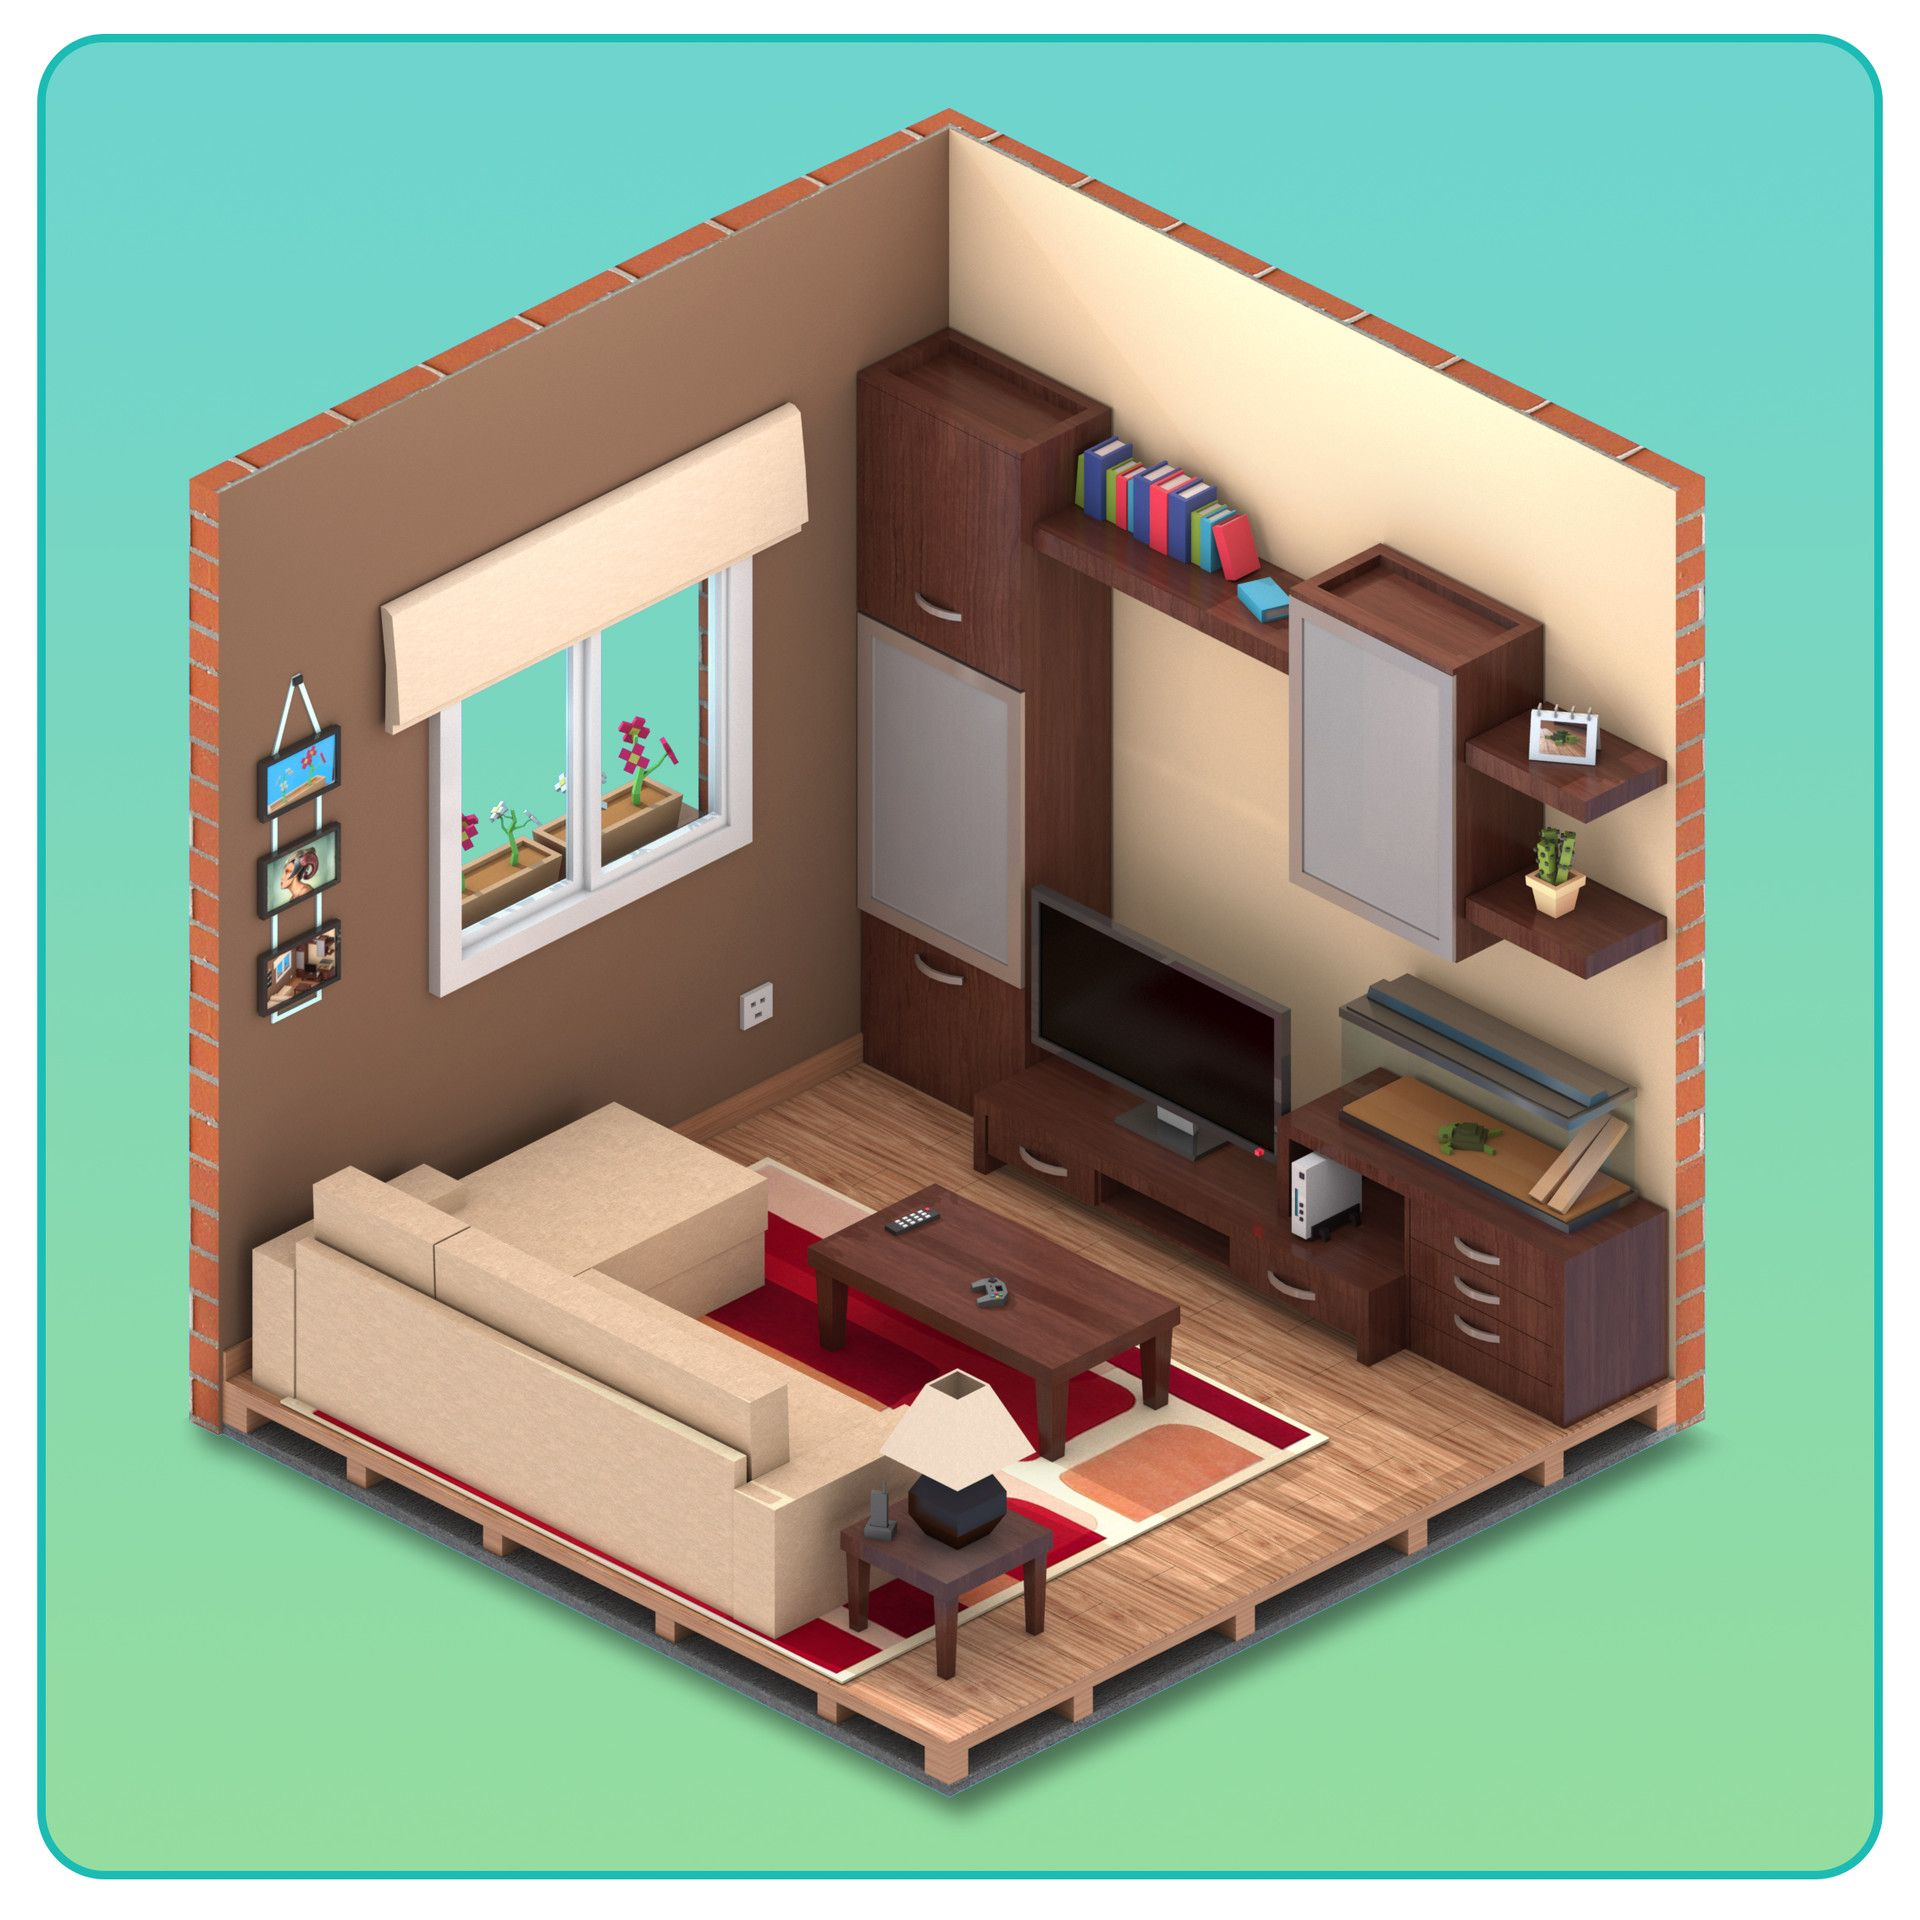 Isometric Living Room For Game Maked In 3dmax And Rendered In